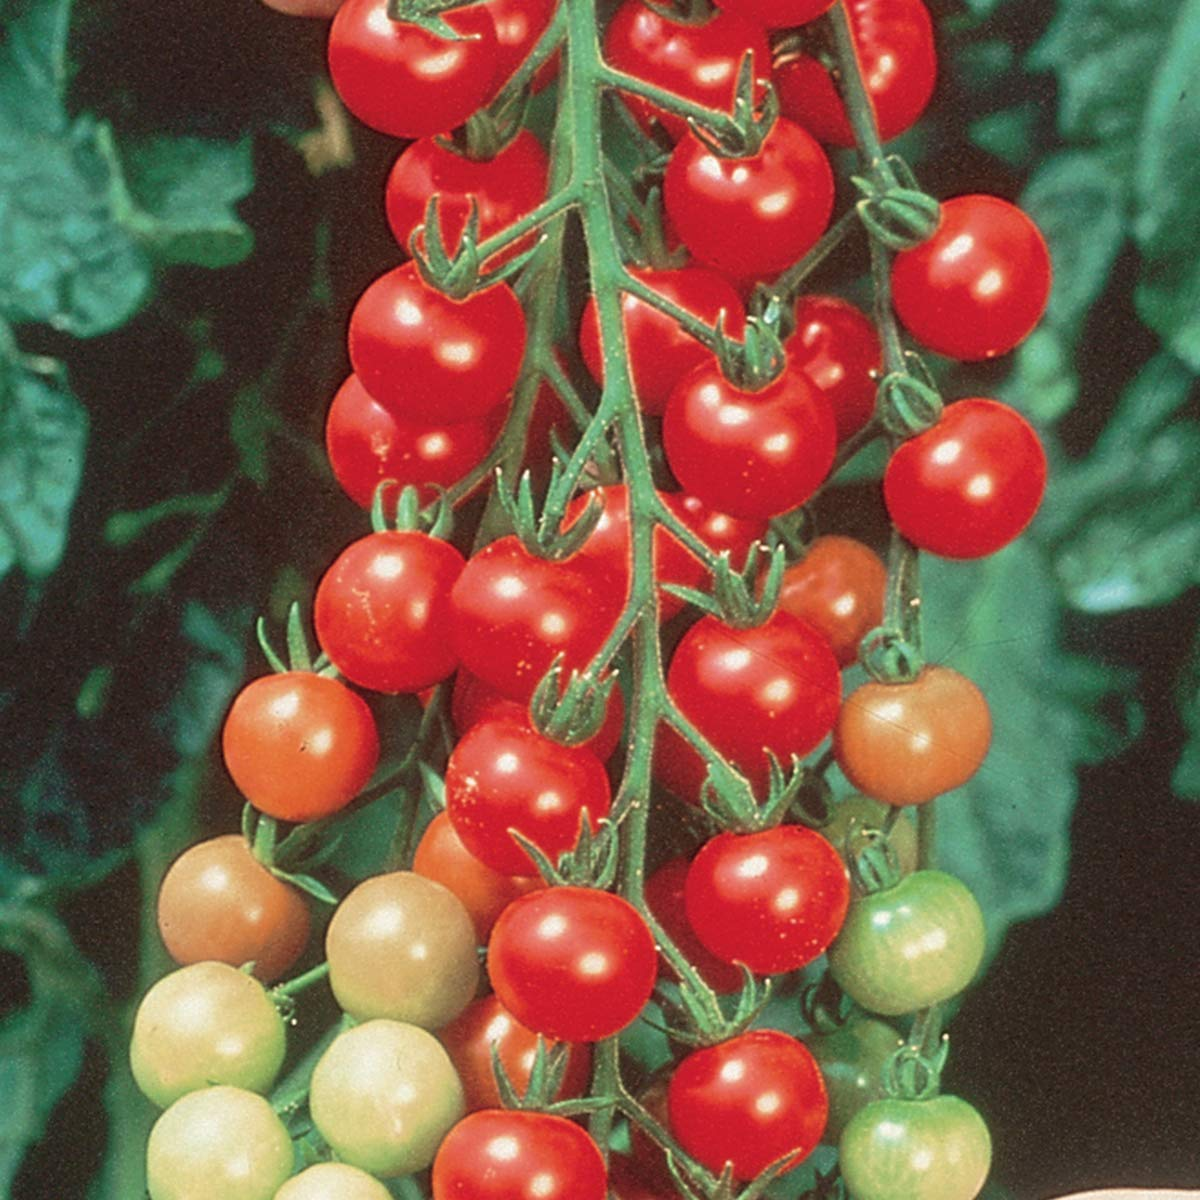 Burpee Super Sweet 100' Hybrid Cherry Tomato, 3 Live Plants, 2 1/2'' Pot by Burpee (Image #1)